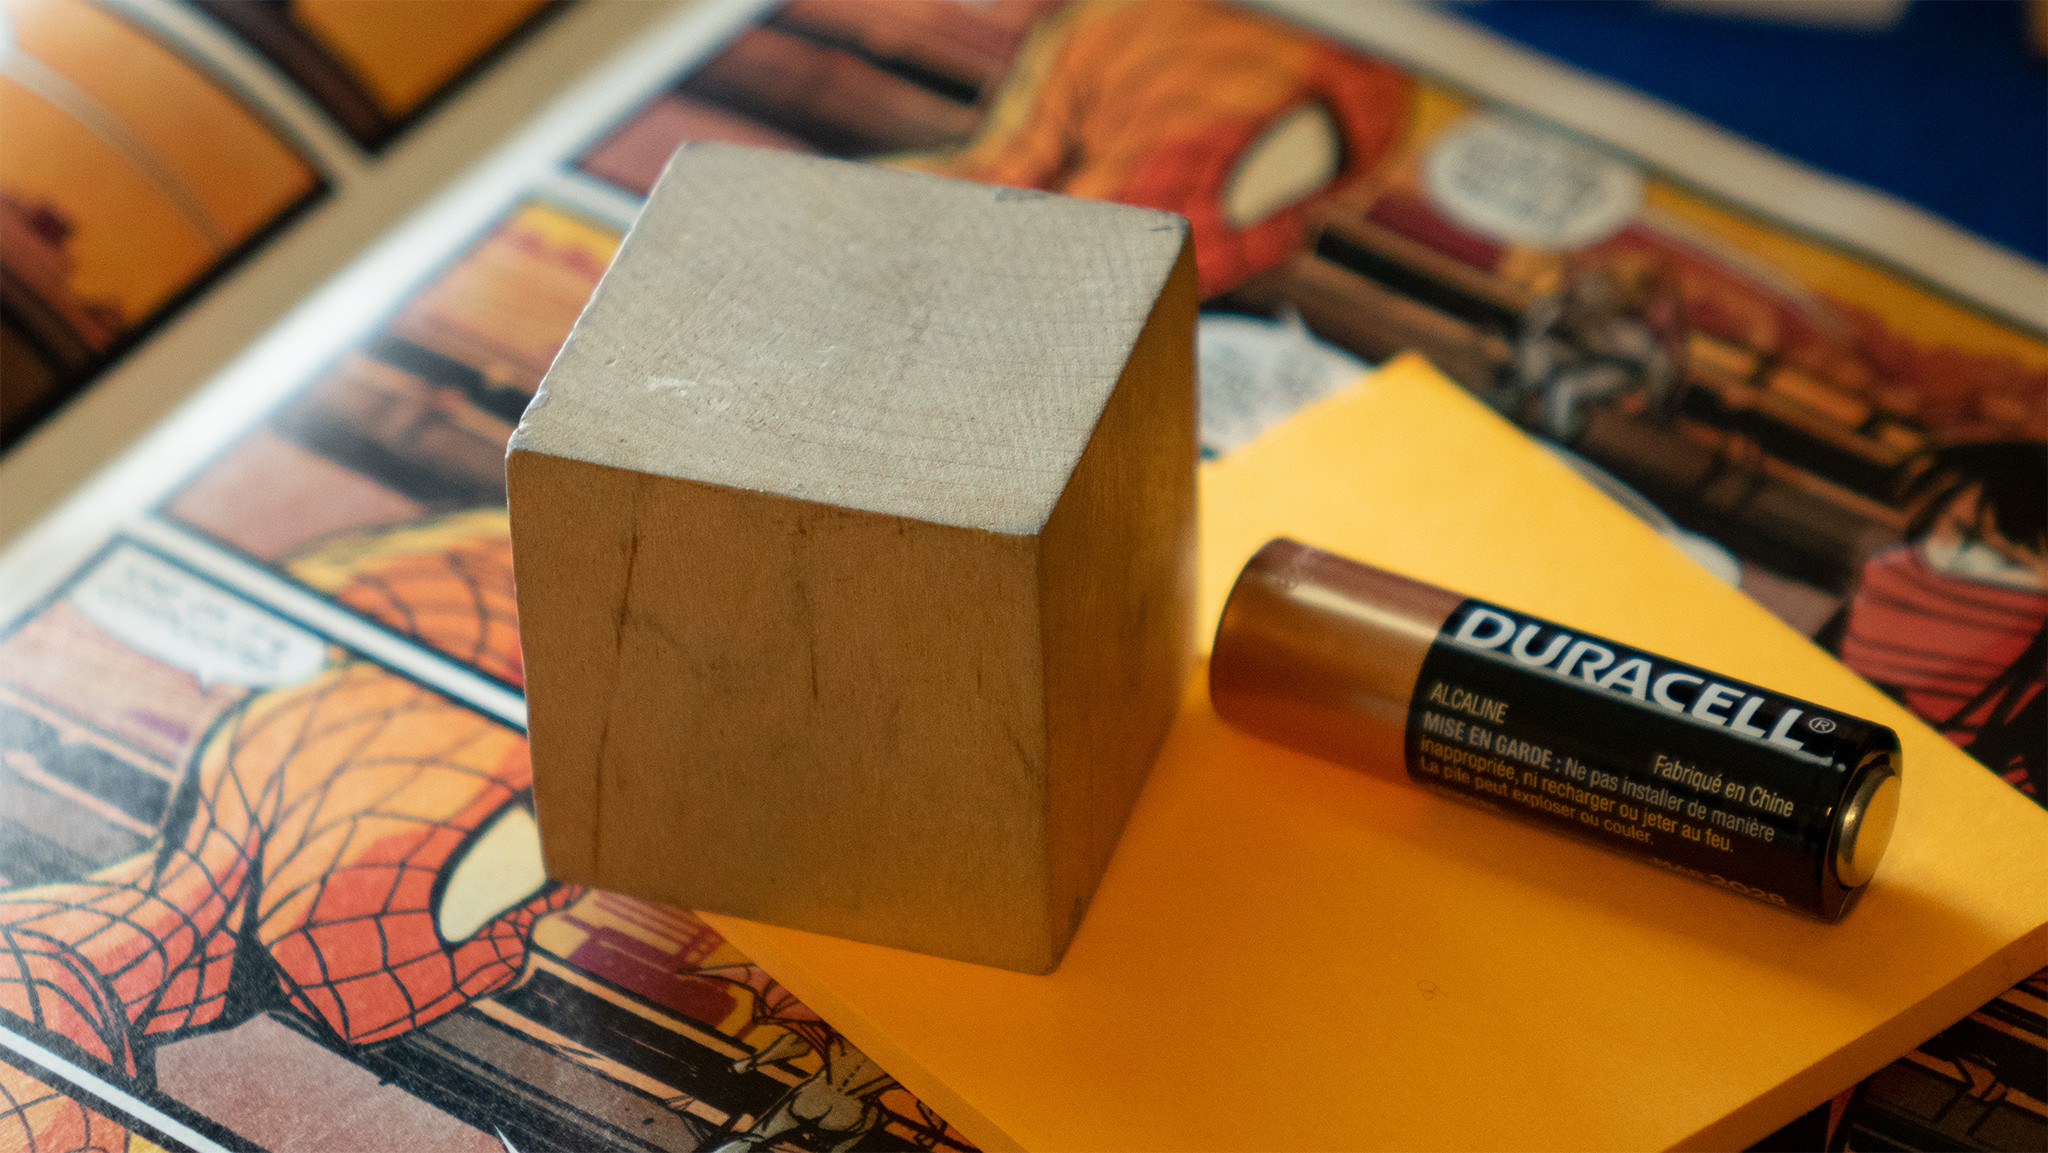 Wood cube, used to match perspective.